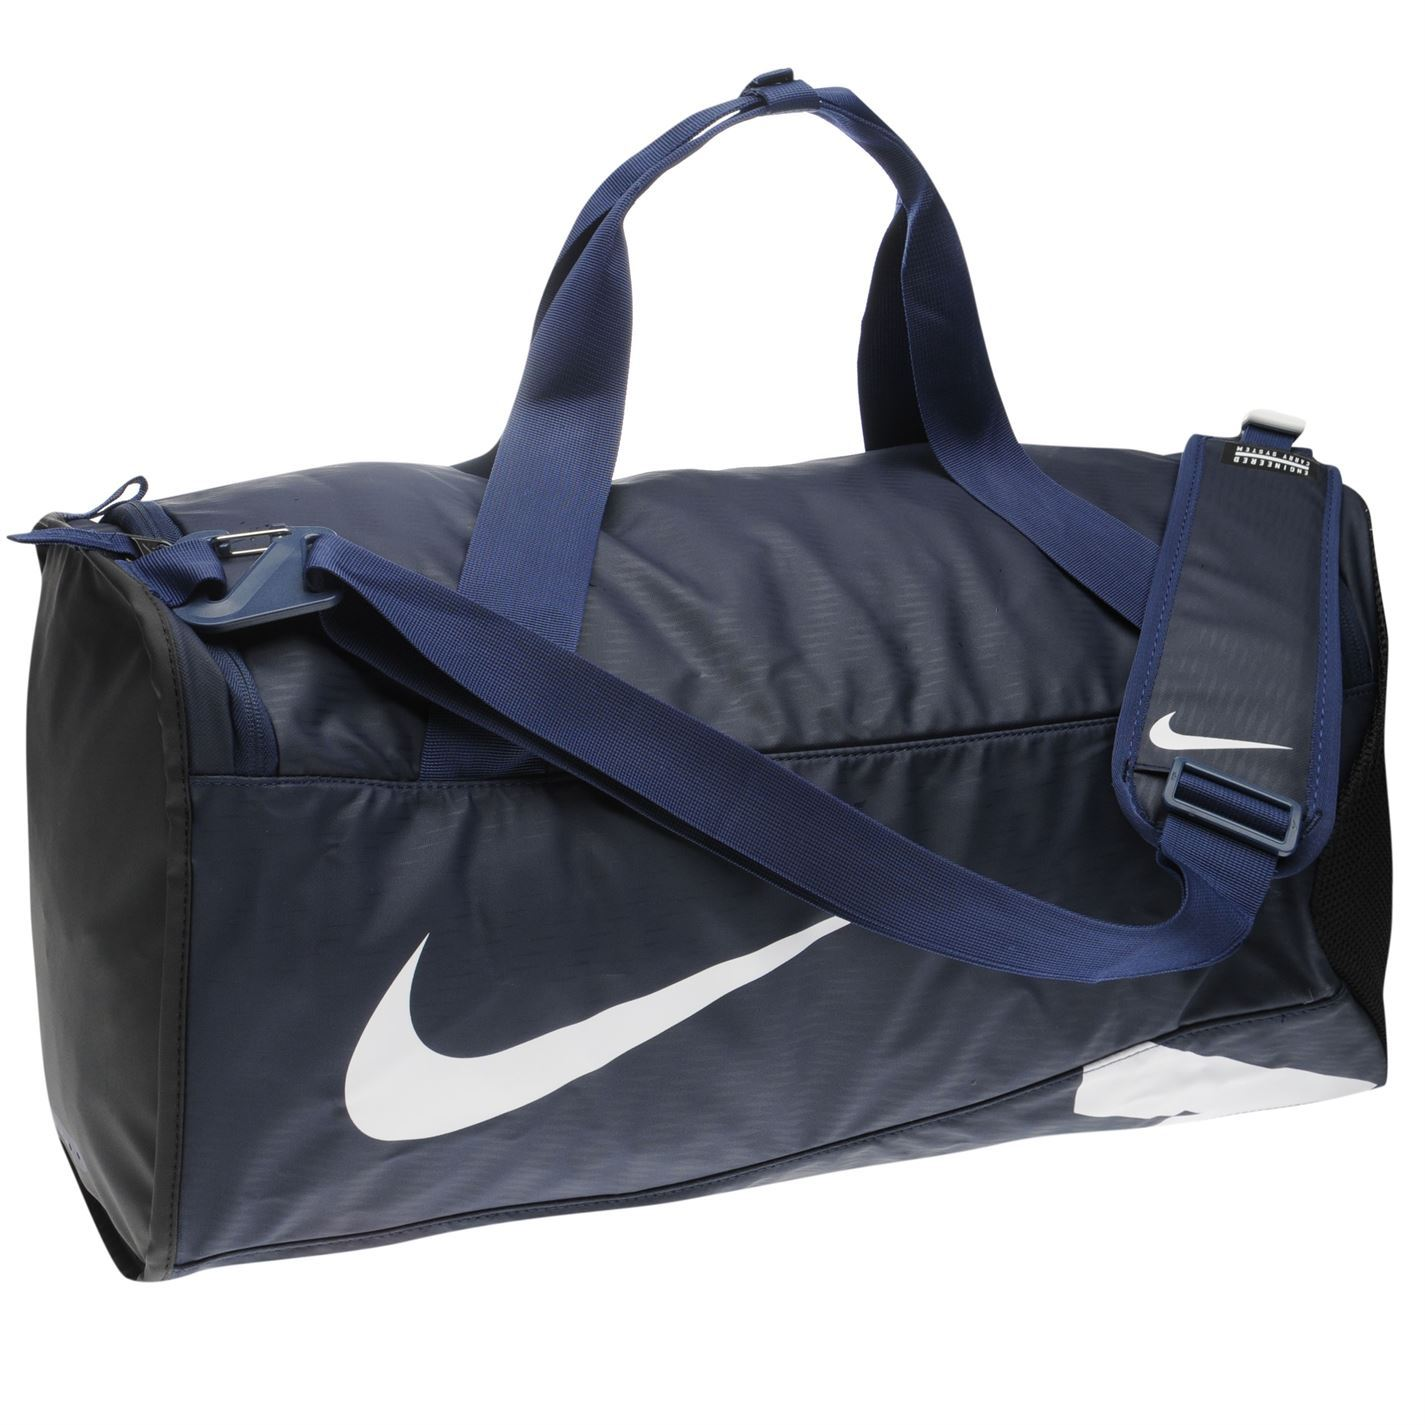 pretty nice 2b687 423e5 ... Nike Alpha Adapt Cross Body Duffel Bag Navy Blk Sports Gym Bag Holdall  Carryall ...